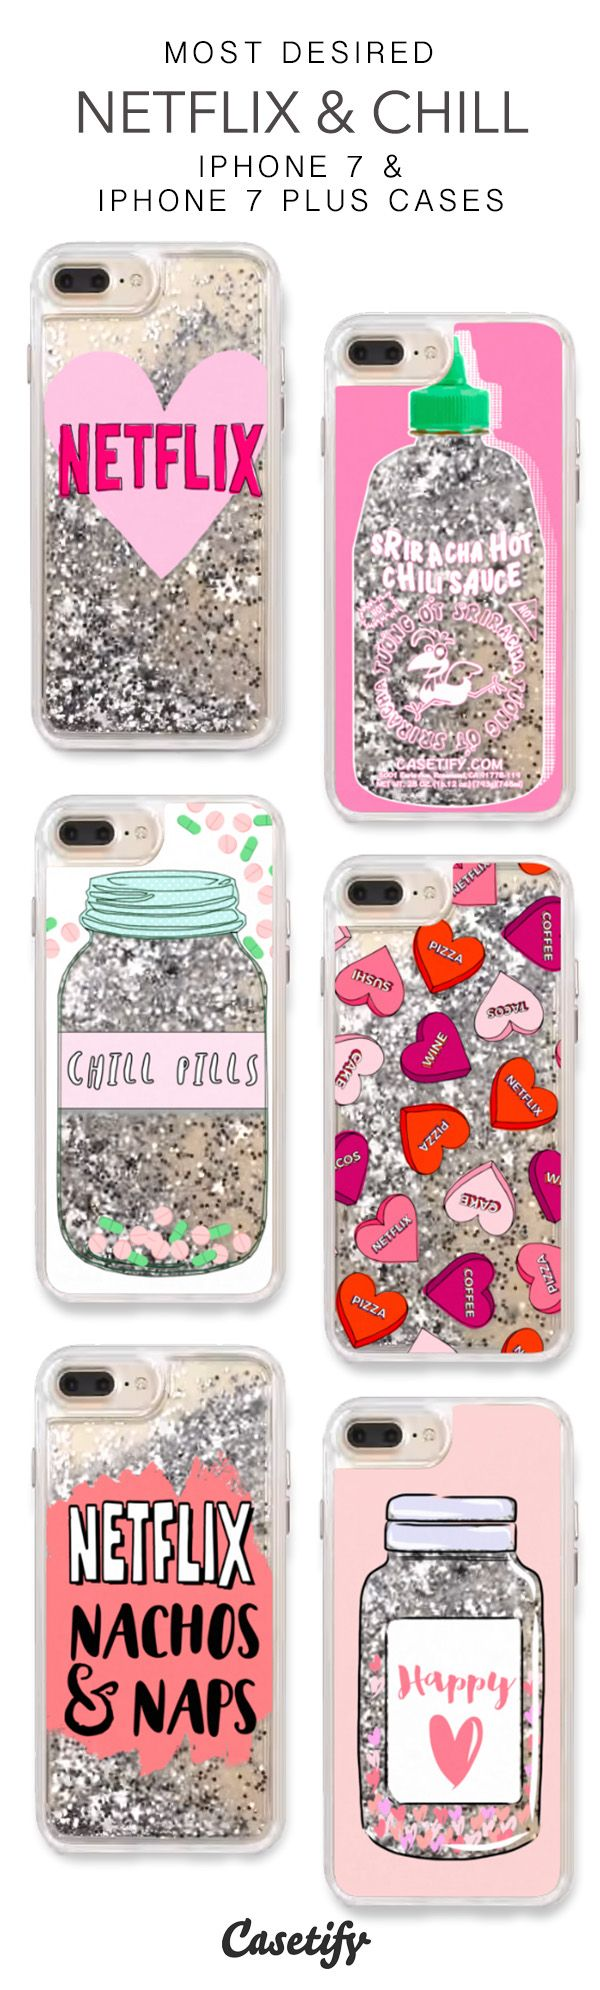 Most Desired Netflix & Chill iPhone 7 Cases & iPhone 7 Plus Cases. More Protective Liquid Glitter Chill Vibes iPhone case here > https://www.casetify.com/en_US/collections/iphone-7-glitter-cases#/?vc=CAIYkbPPPo http://amzn.to/2qZ3RzU